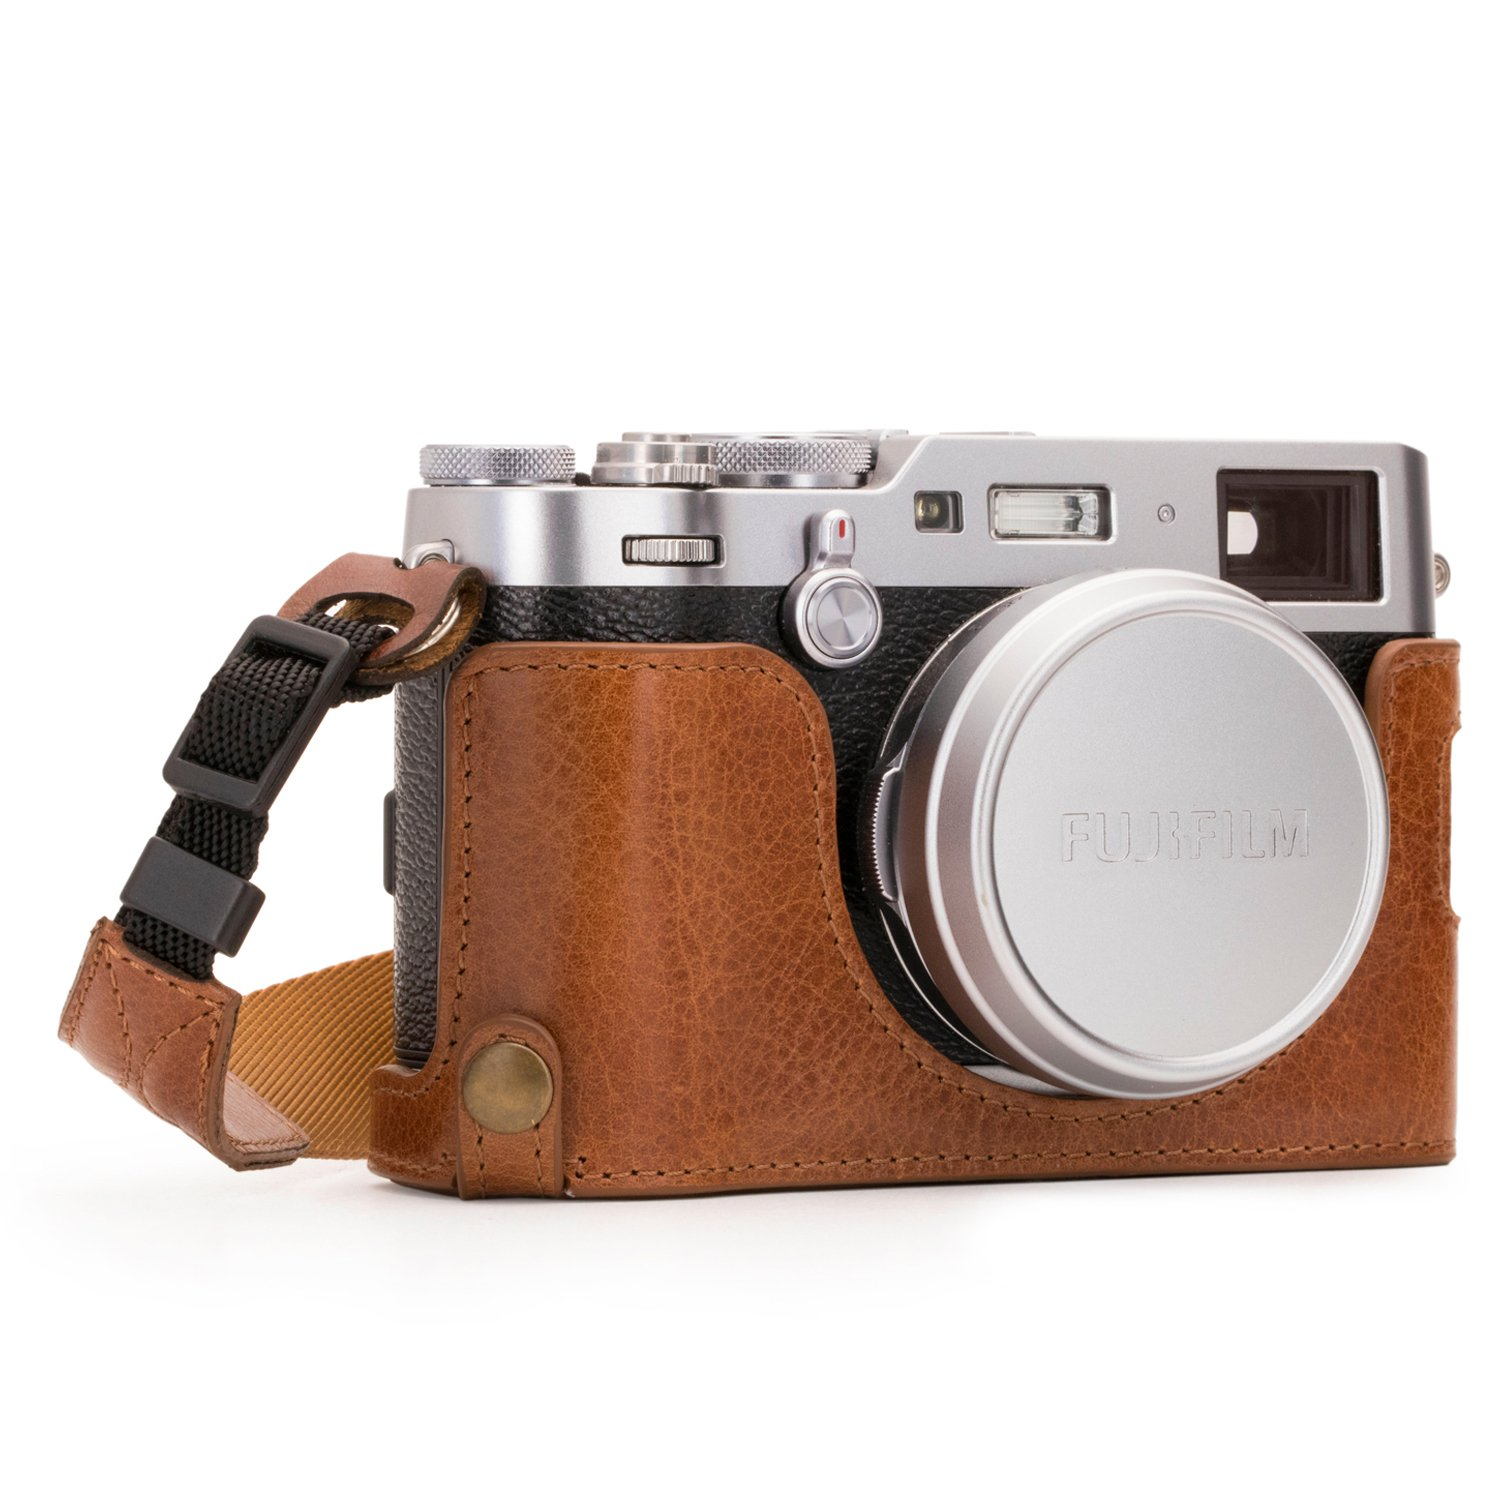 Megagear MG1282 Fujifilm X100F Ever Ready Genuine Leather Camera Half Case & Strap with Battery Access, Brown